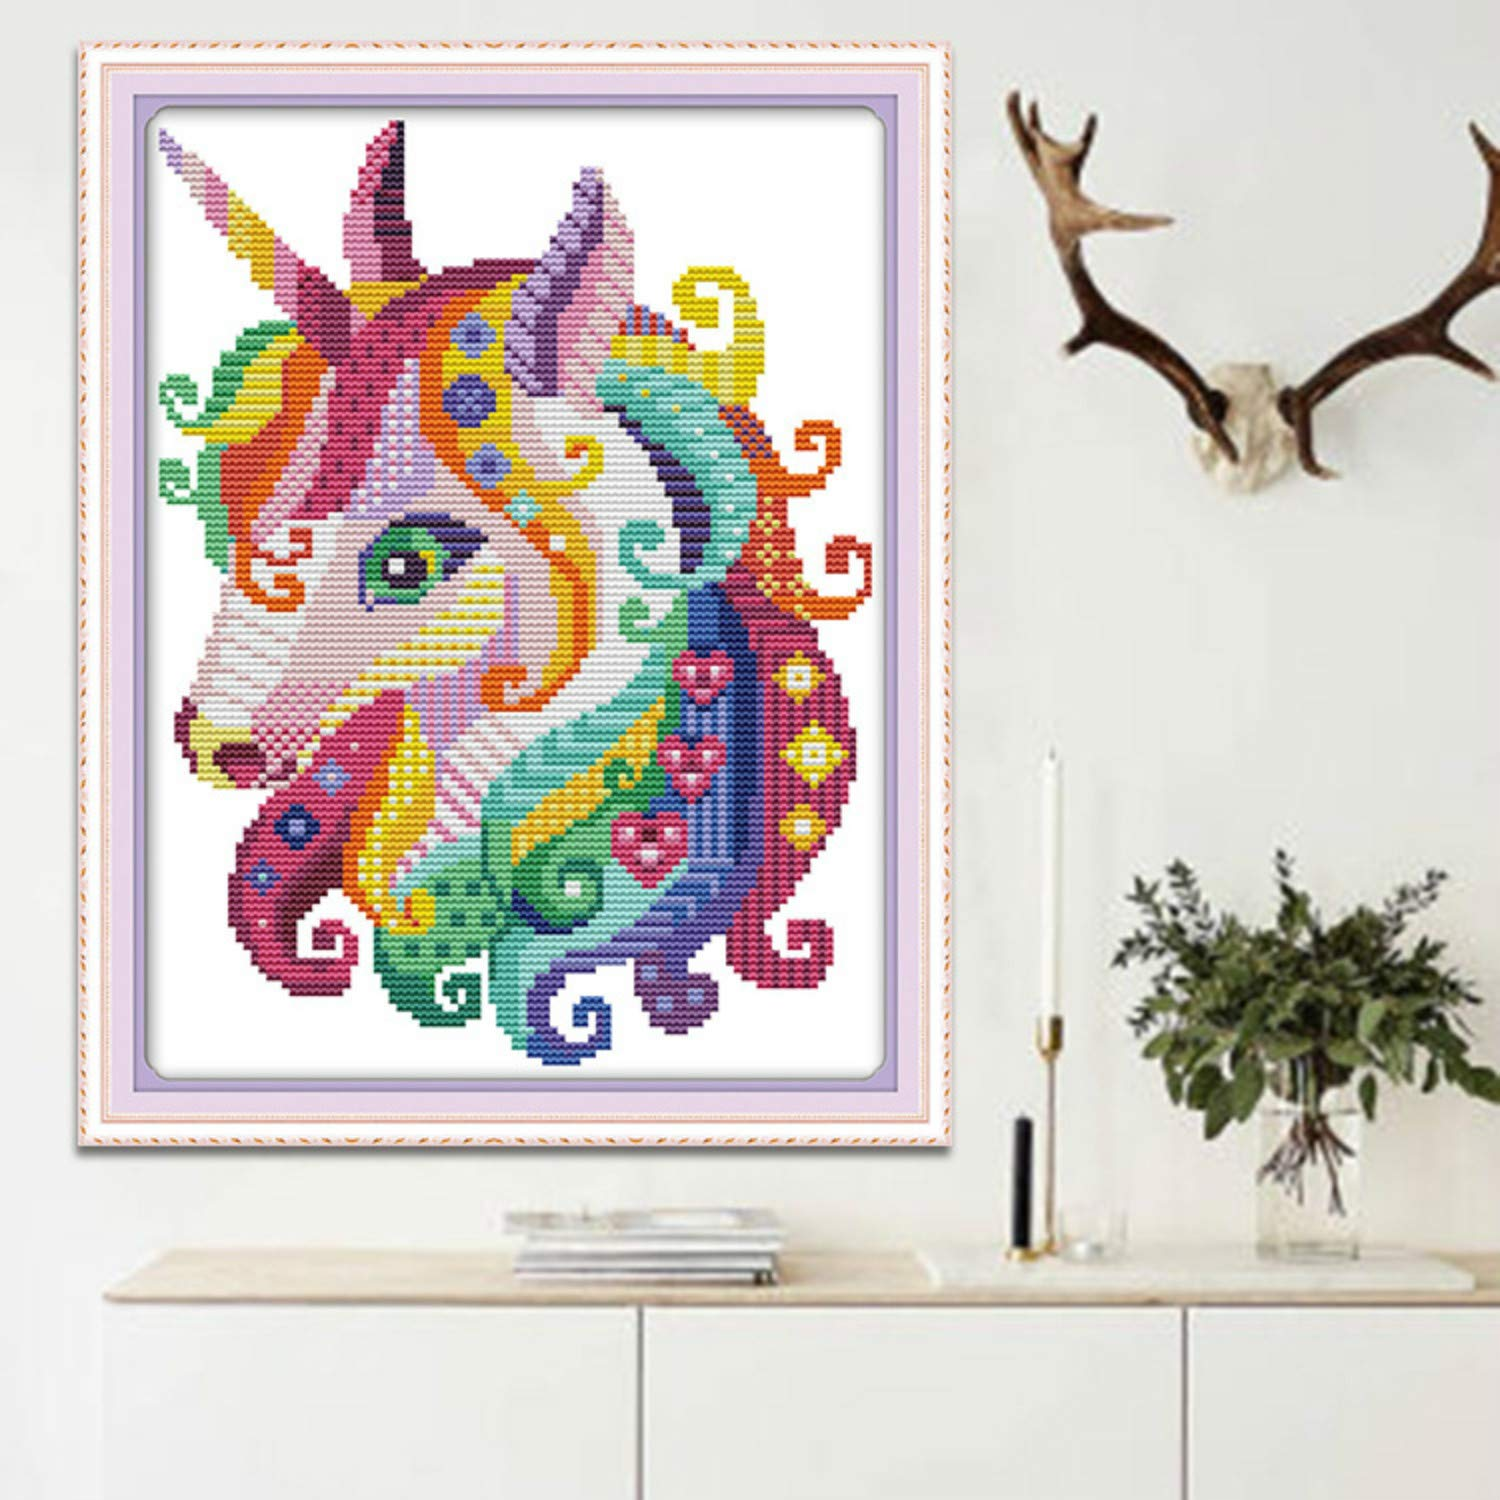 Stamped Horse29x26cm Premium Stamped Cross Stitch Kits with Pre-Printed Patterns for Beginner Kids Adults Cross-Stitch Stamped Kits Embroidery Crafts Needlepoint Starter Kits for Home Wall Decor